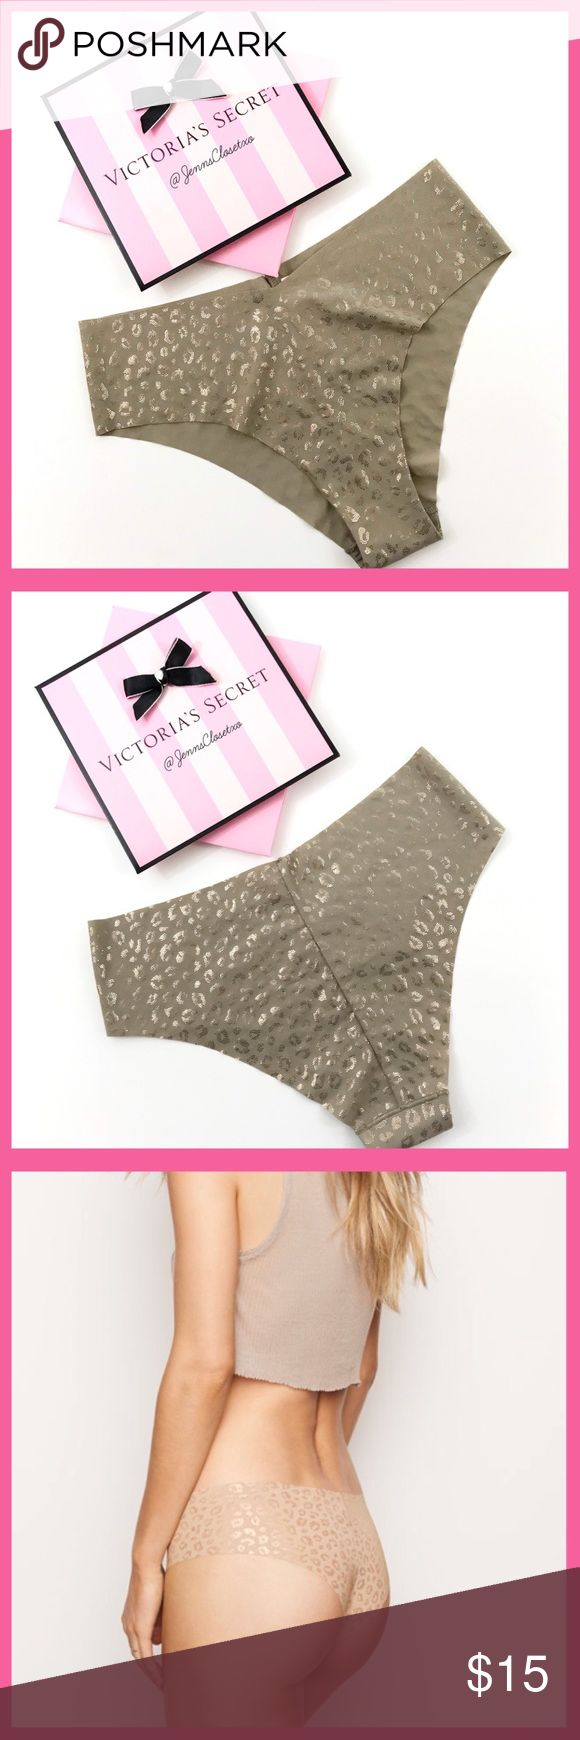 •Victoria's Secret• No show Cheeky Panty V I C T O R I A 'S ✦ S E C R E T   ❈ Condition: New with tags  Super-smooth, seamless and totally elastic-free:  with laser-cut edges, this cheeky cuts the sleekest shape. •VS Sexy No-Show solutions:  laser-cut edges for a super smooth, seamless fit •Moderate back coverage: shows a little, but not all •Machine wash •Imported nylon/spandex  ❈ Fast shipping Monday⇢Friday  Same/Next day after your purchase  ❈ Questions? Please comment below,  I will be…